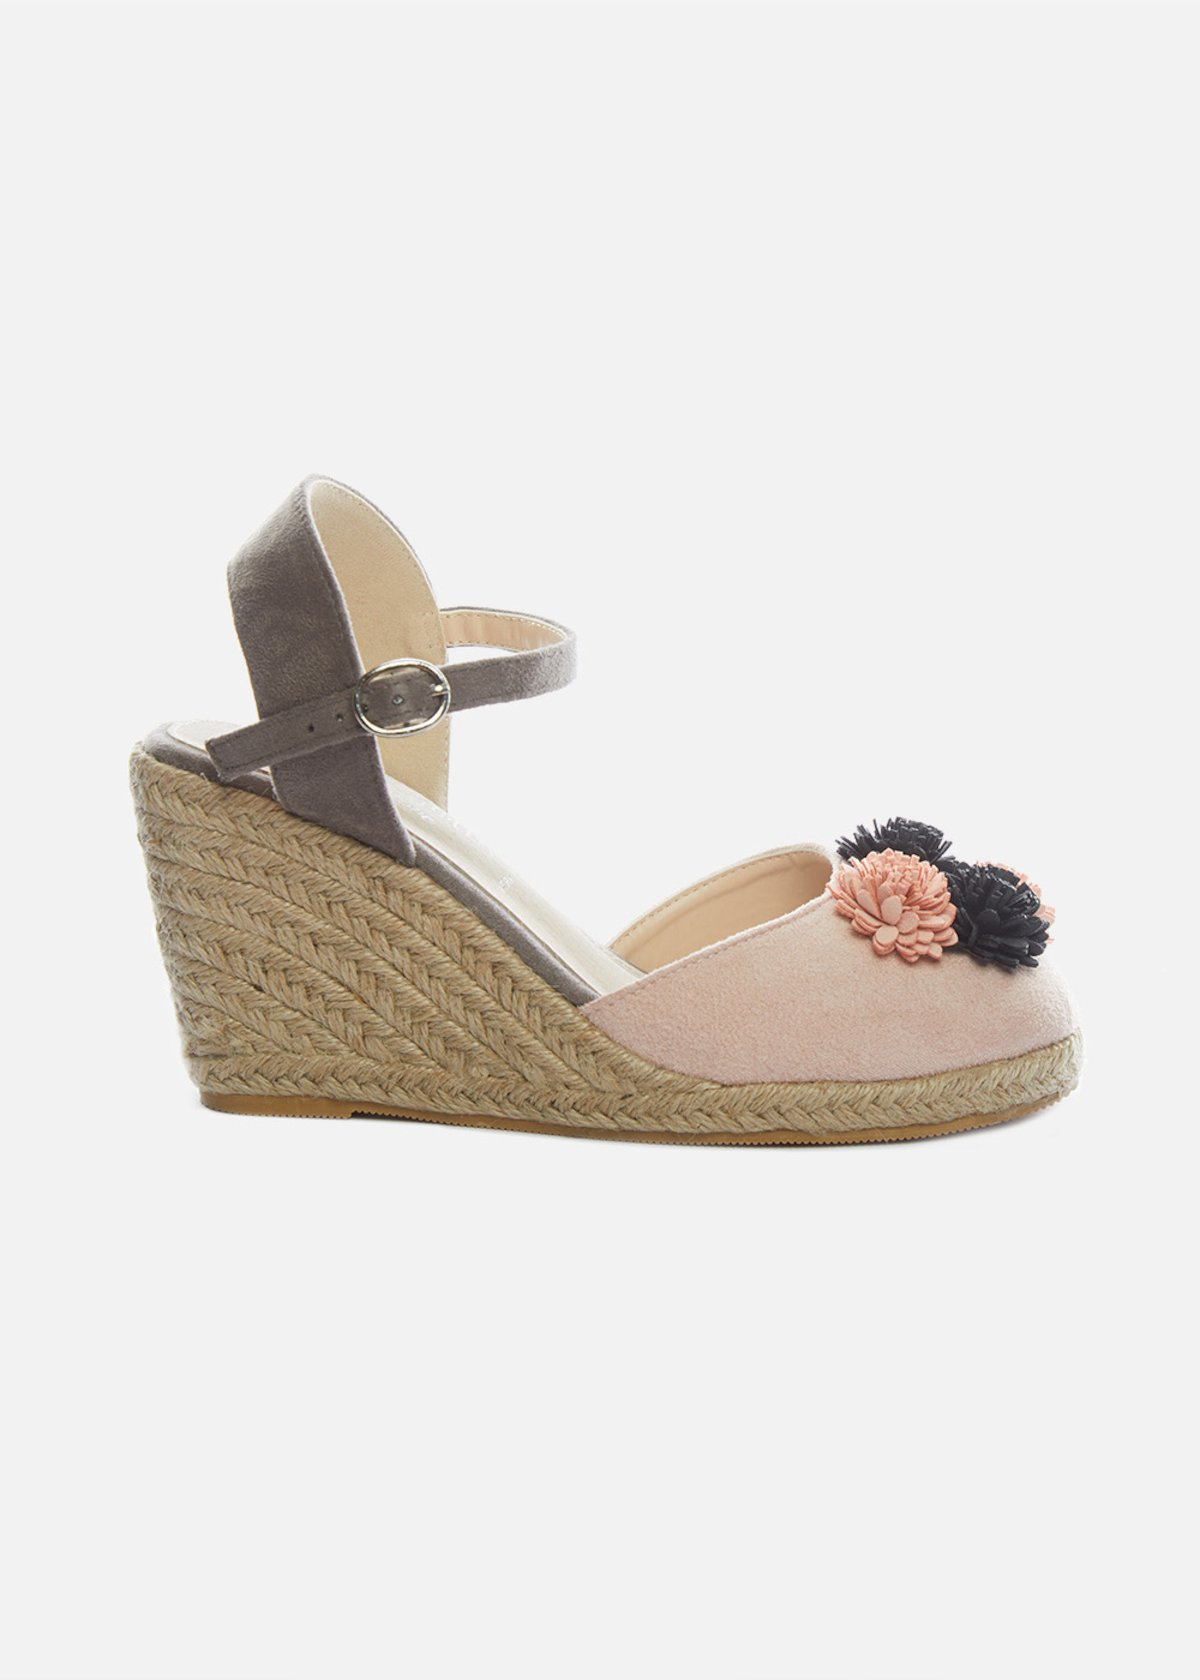 Straw wedge and floral design Soleya sandals - Pink